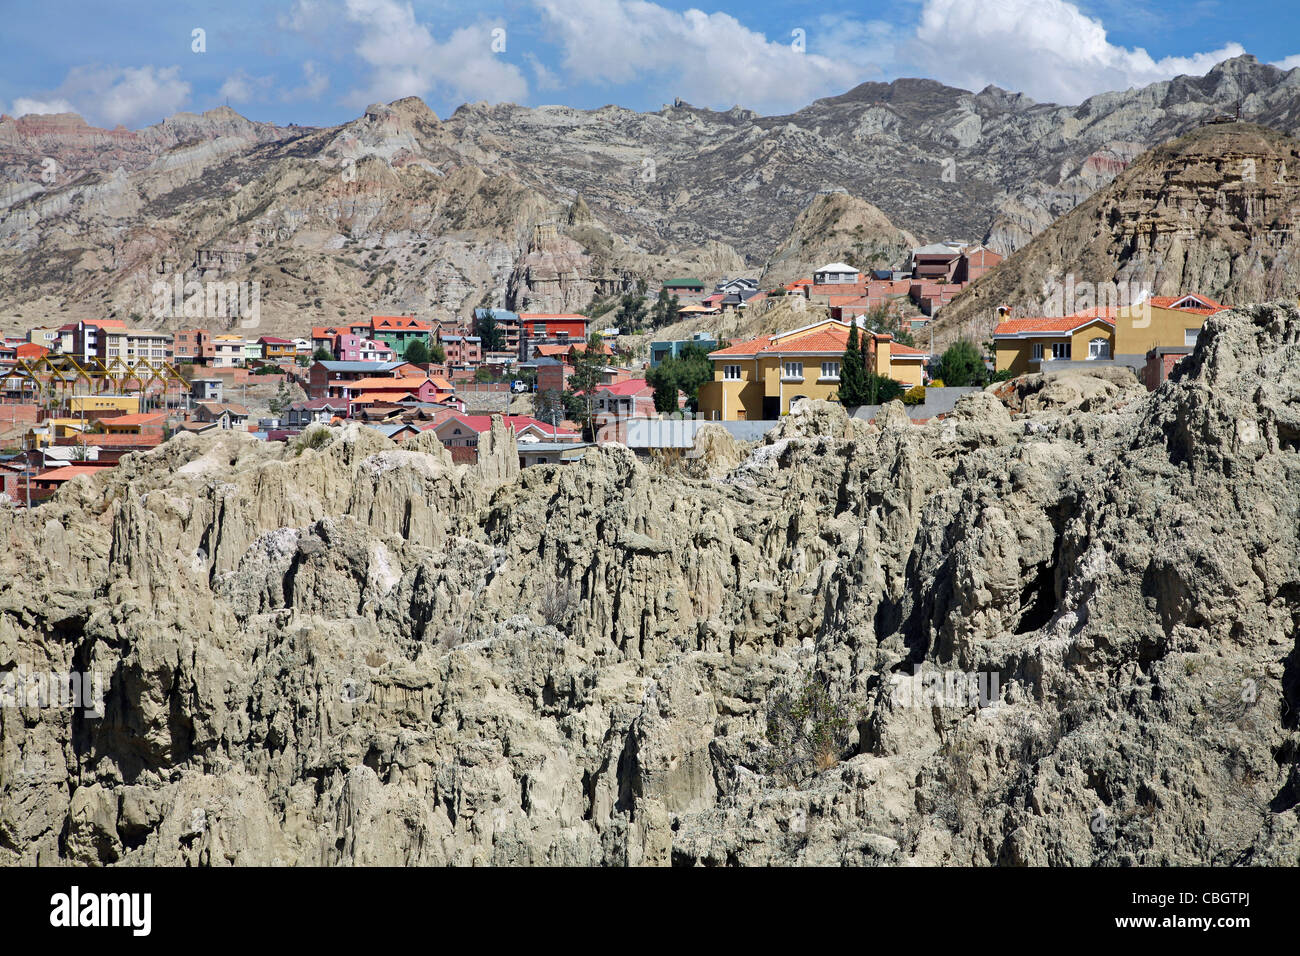 Houses in the Valley of the Moon / Valle de la Luna near La Paz, Bolivia - Stock Image